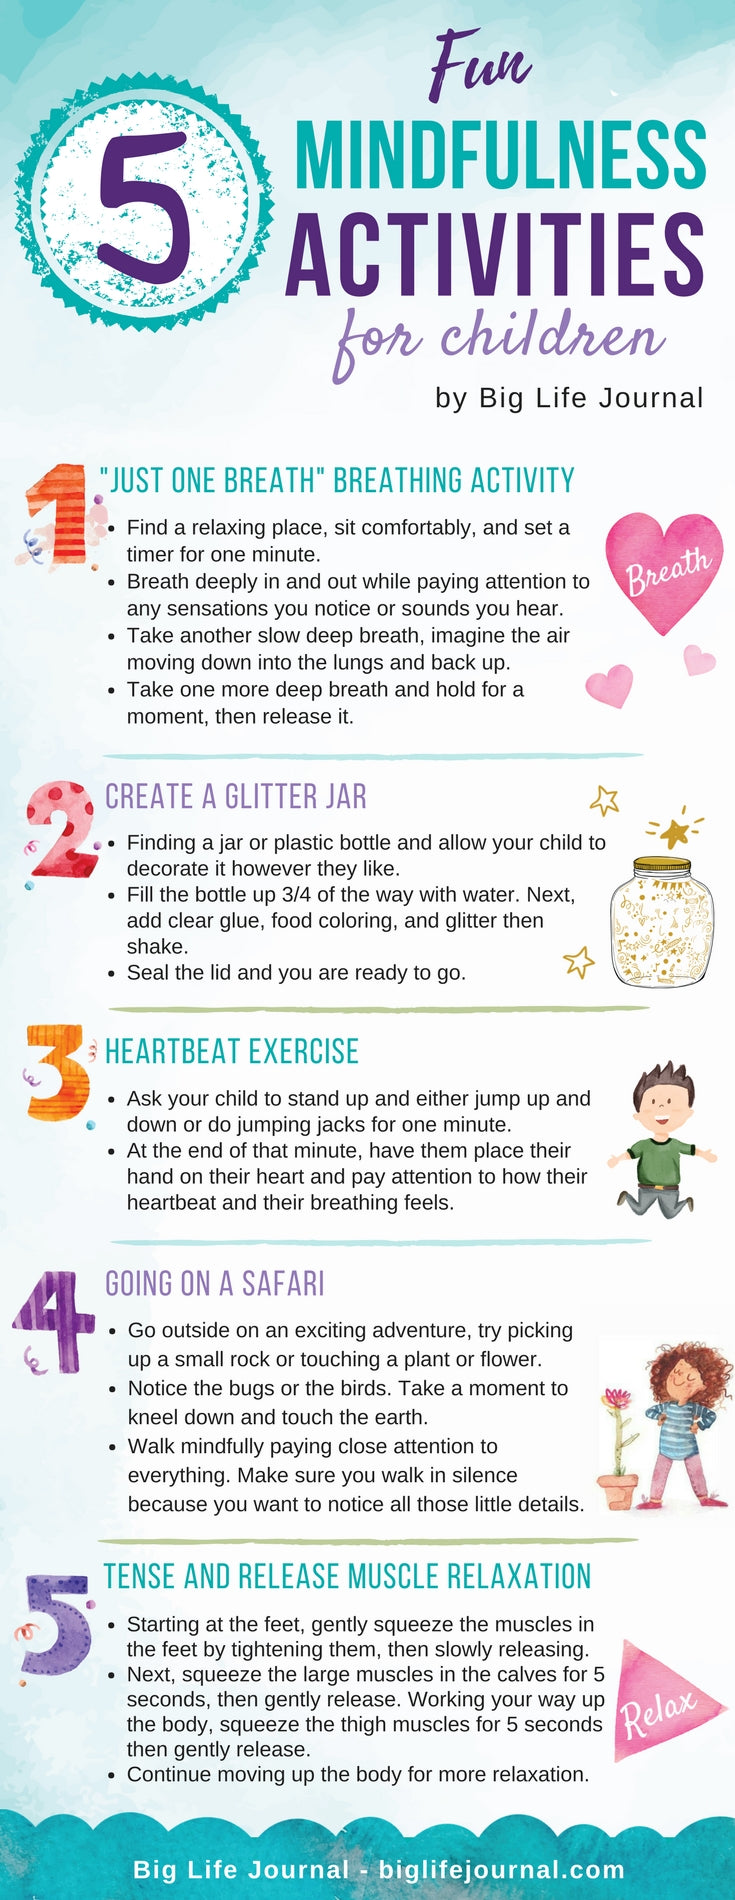 5 Fun Mindfulness Activities for Children